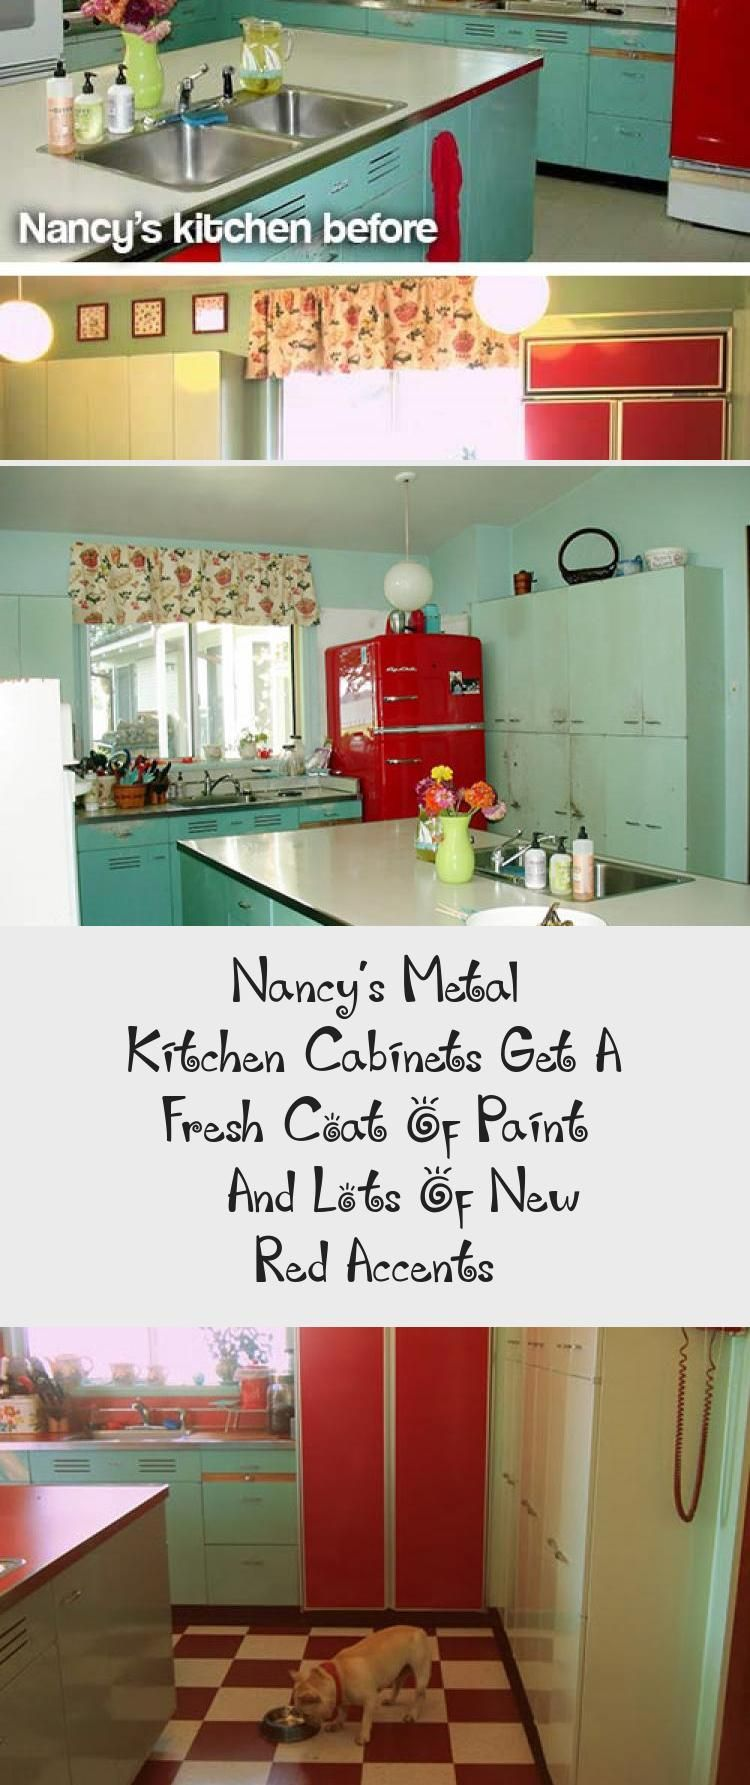 Red Kitchen Counter Tops The Cottage Of My Childhood Has Red Linoleum Counters With Steel Bands In 2020 Metal Kitchen Cabinets Interior Design Accents Metal Kitchen